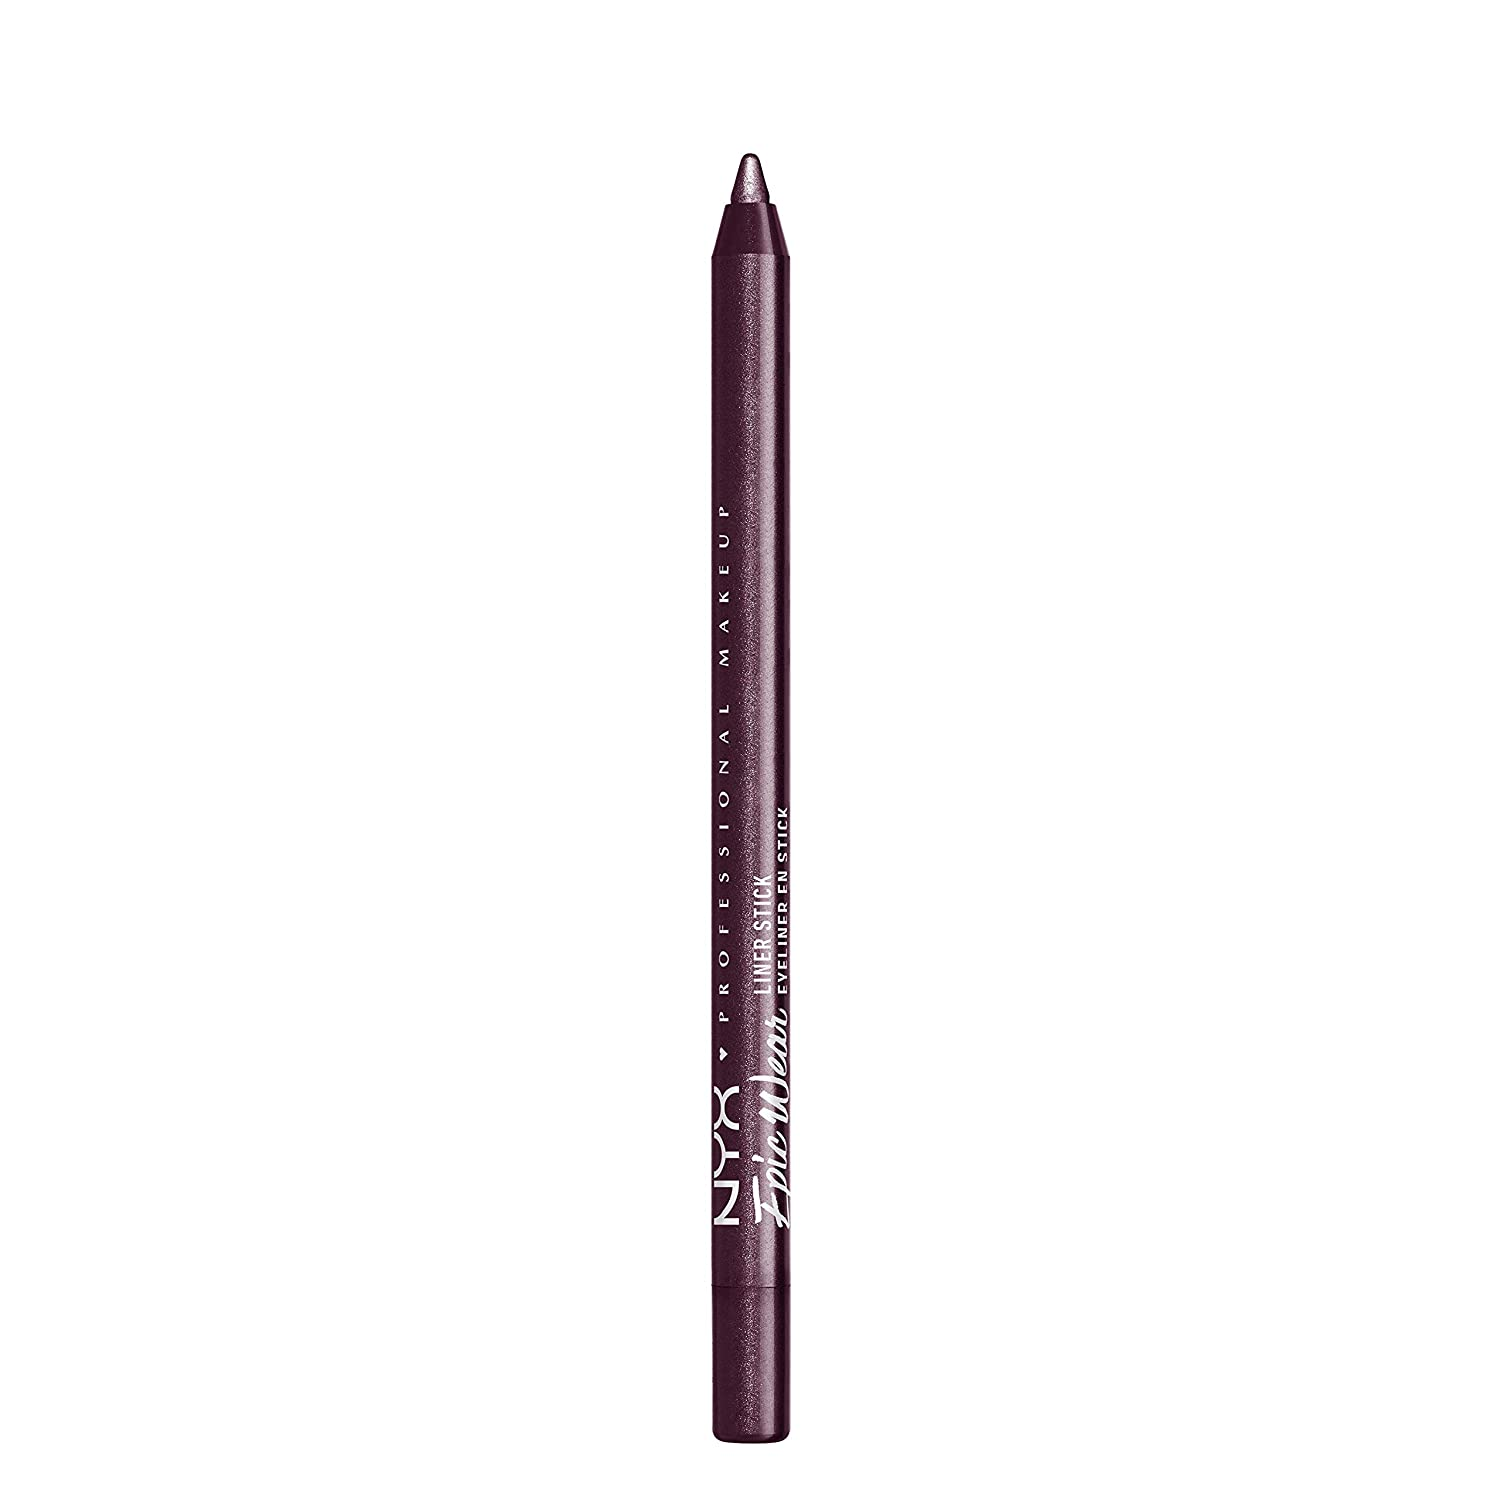 NYX PROFESSIONAL MAKEUP Epic Wear Liner Stick, Eyeliner Pencil - Berry Goth